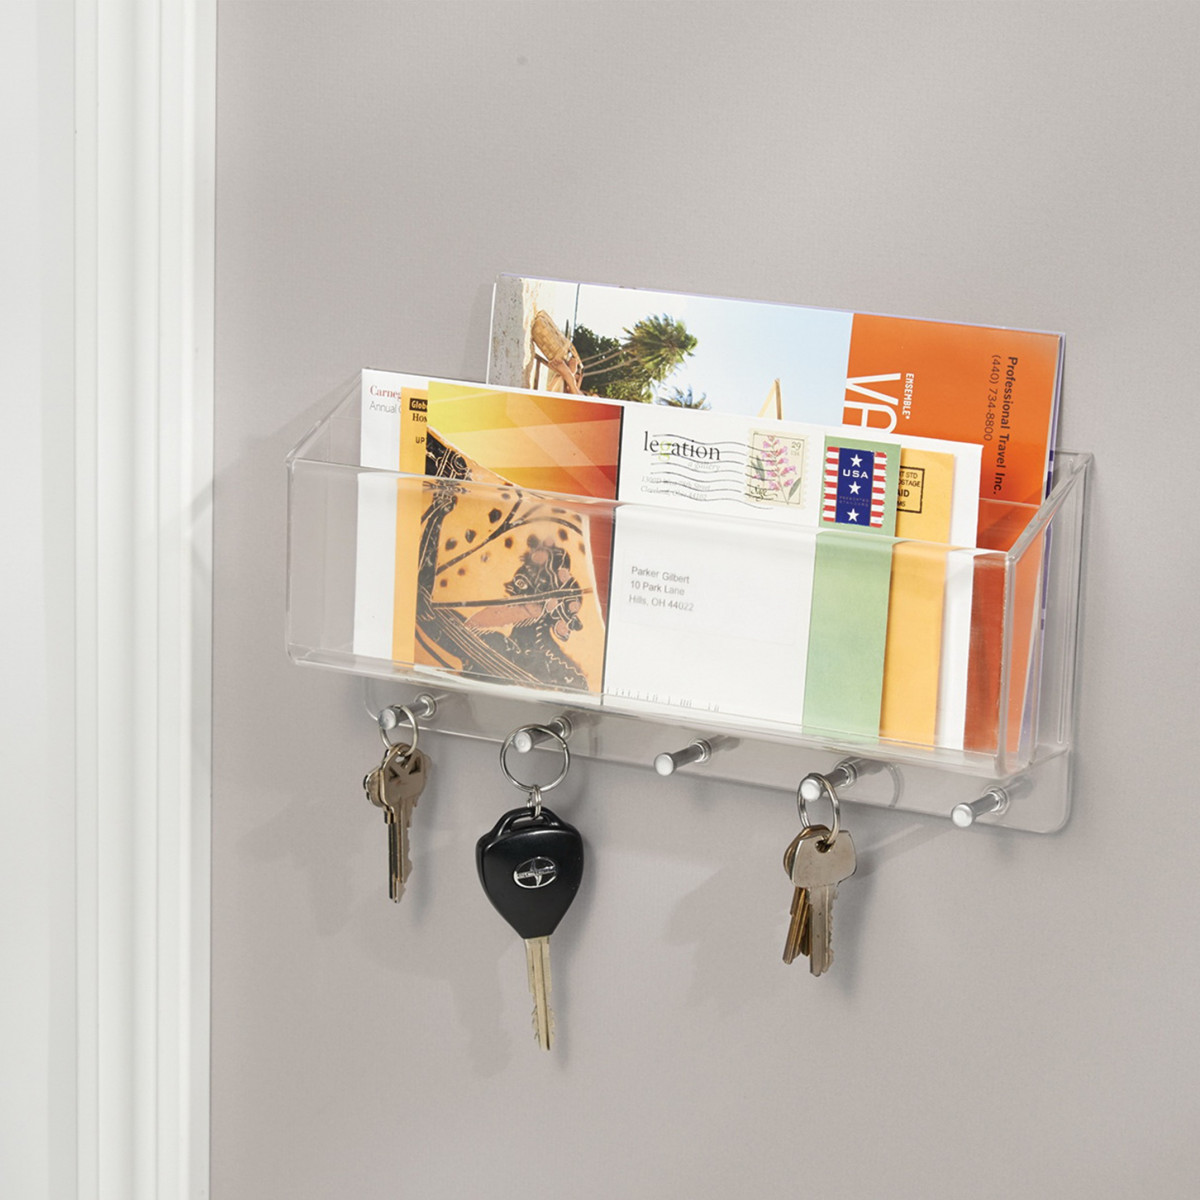 Porte courrier cl s mural rangement entr e for Porte courrier mural design